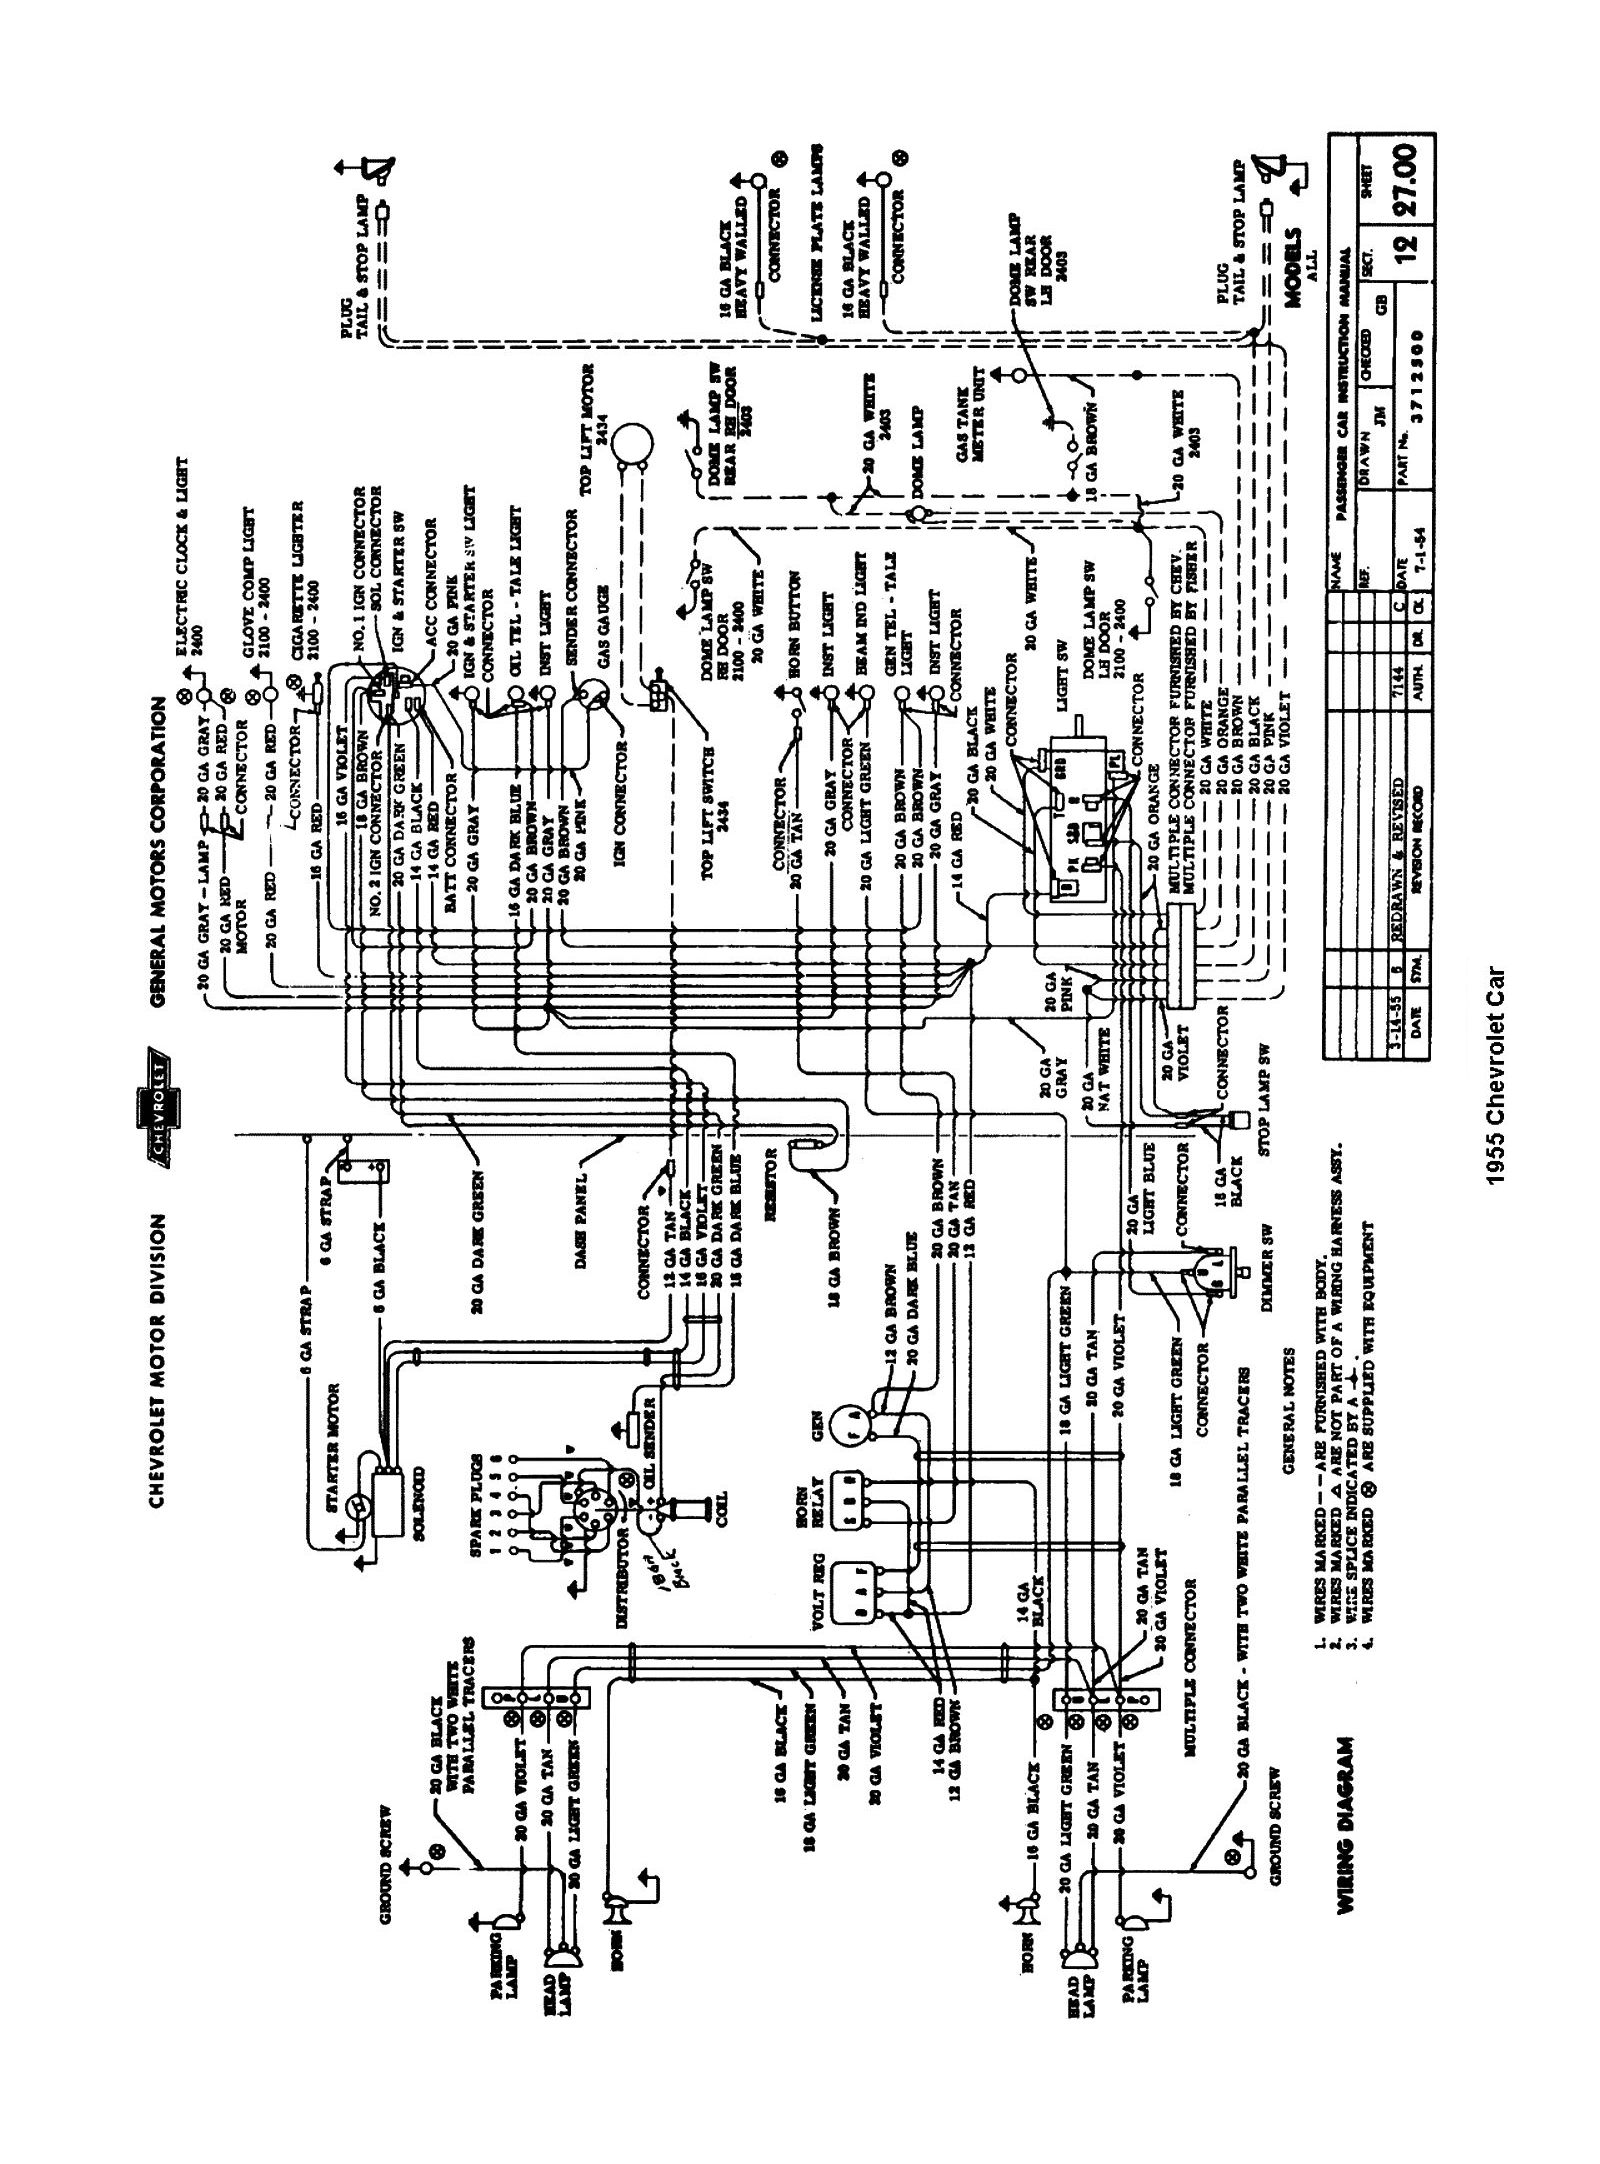 basic dimmer switch wiring diagram wiring library  automotive hazard switch wiring diagram free download #14